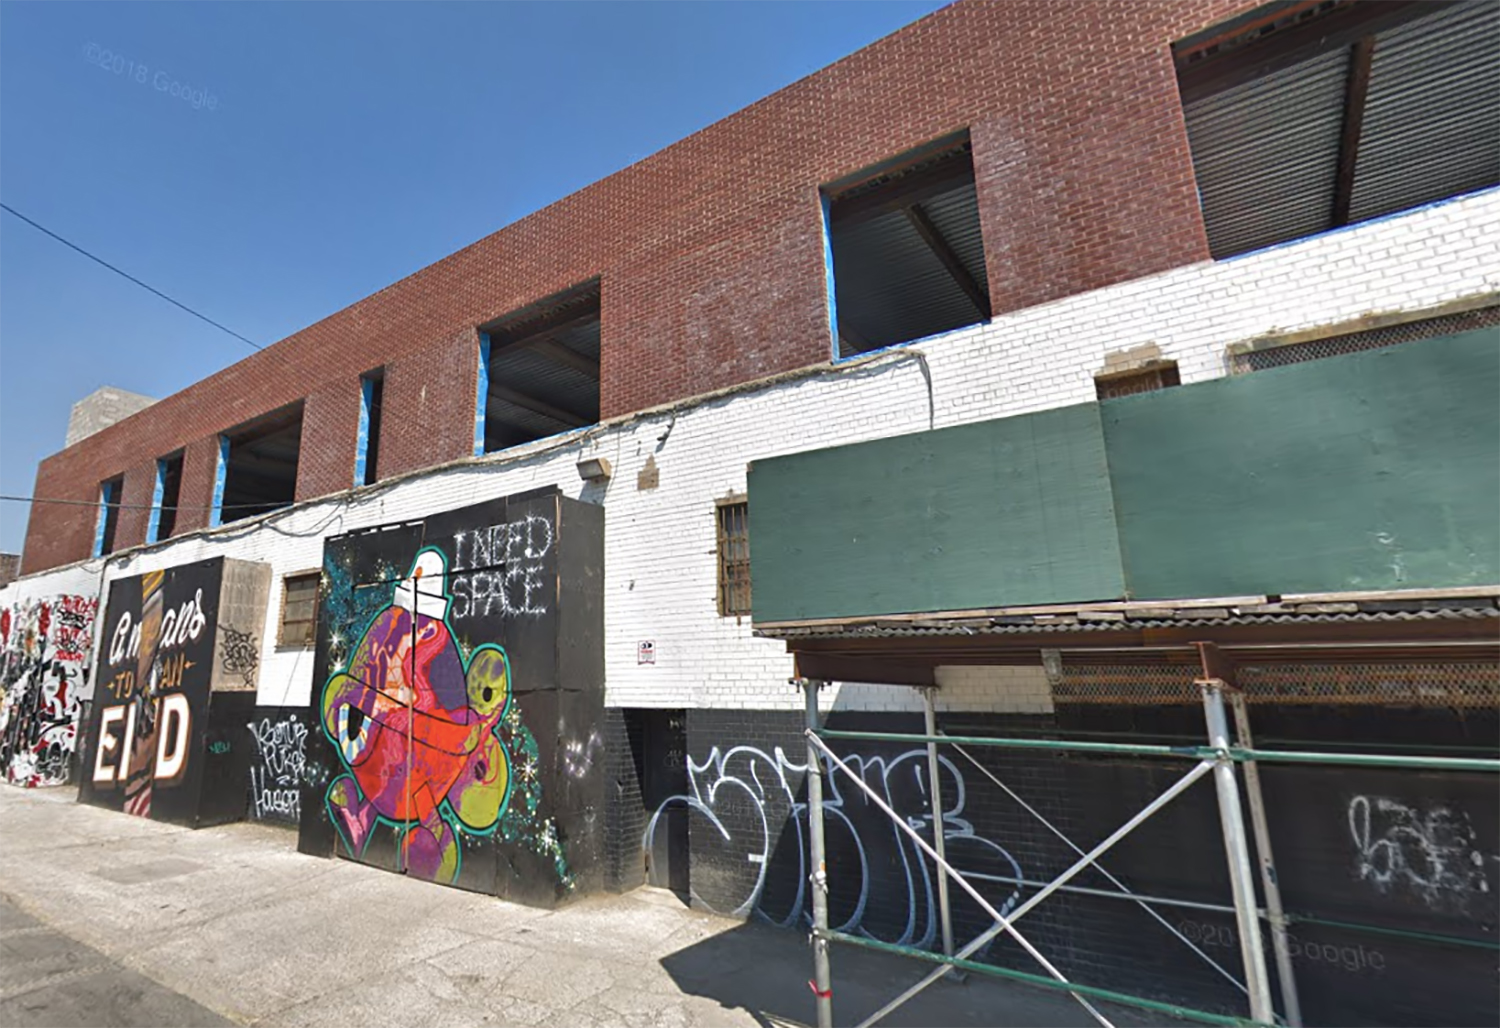 Toby Moskovitz Next Major Brooklyn Office Project Revealed At 215 Moore Street In Williamsburg New York Yimby